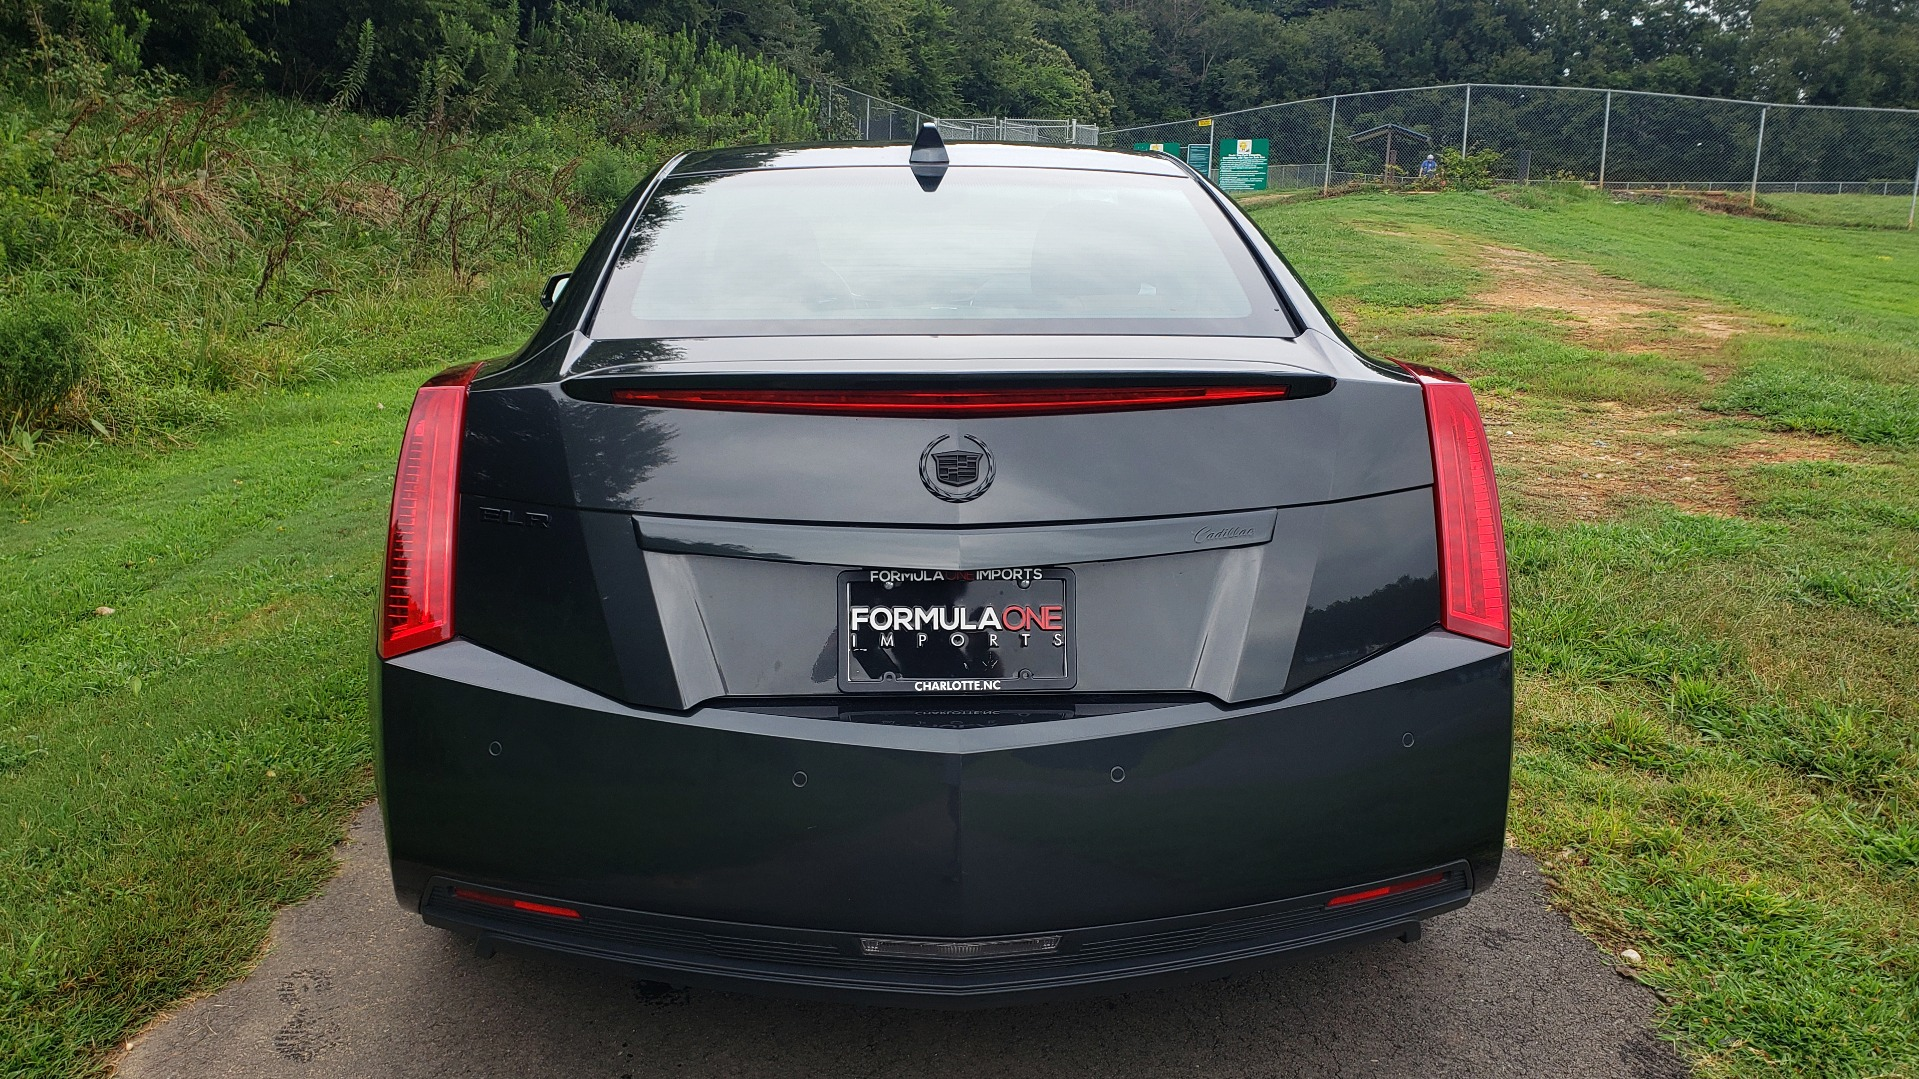 Used 2014 Cadillac ELR 2DR COUPE / HYBRID / NAV / BOSE / HEATED SEATS / REARVIEW for sale $34,000 at Formula Imports in Charlotte NC 28227 22